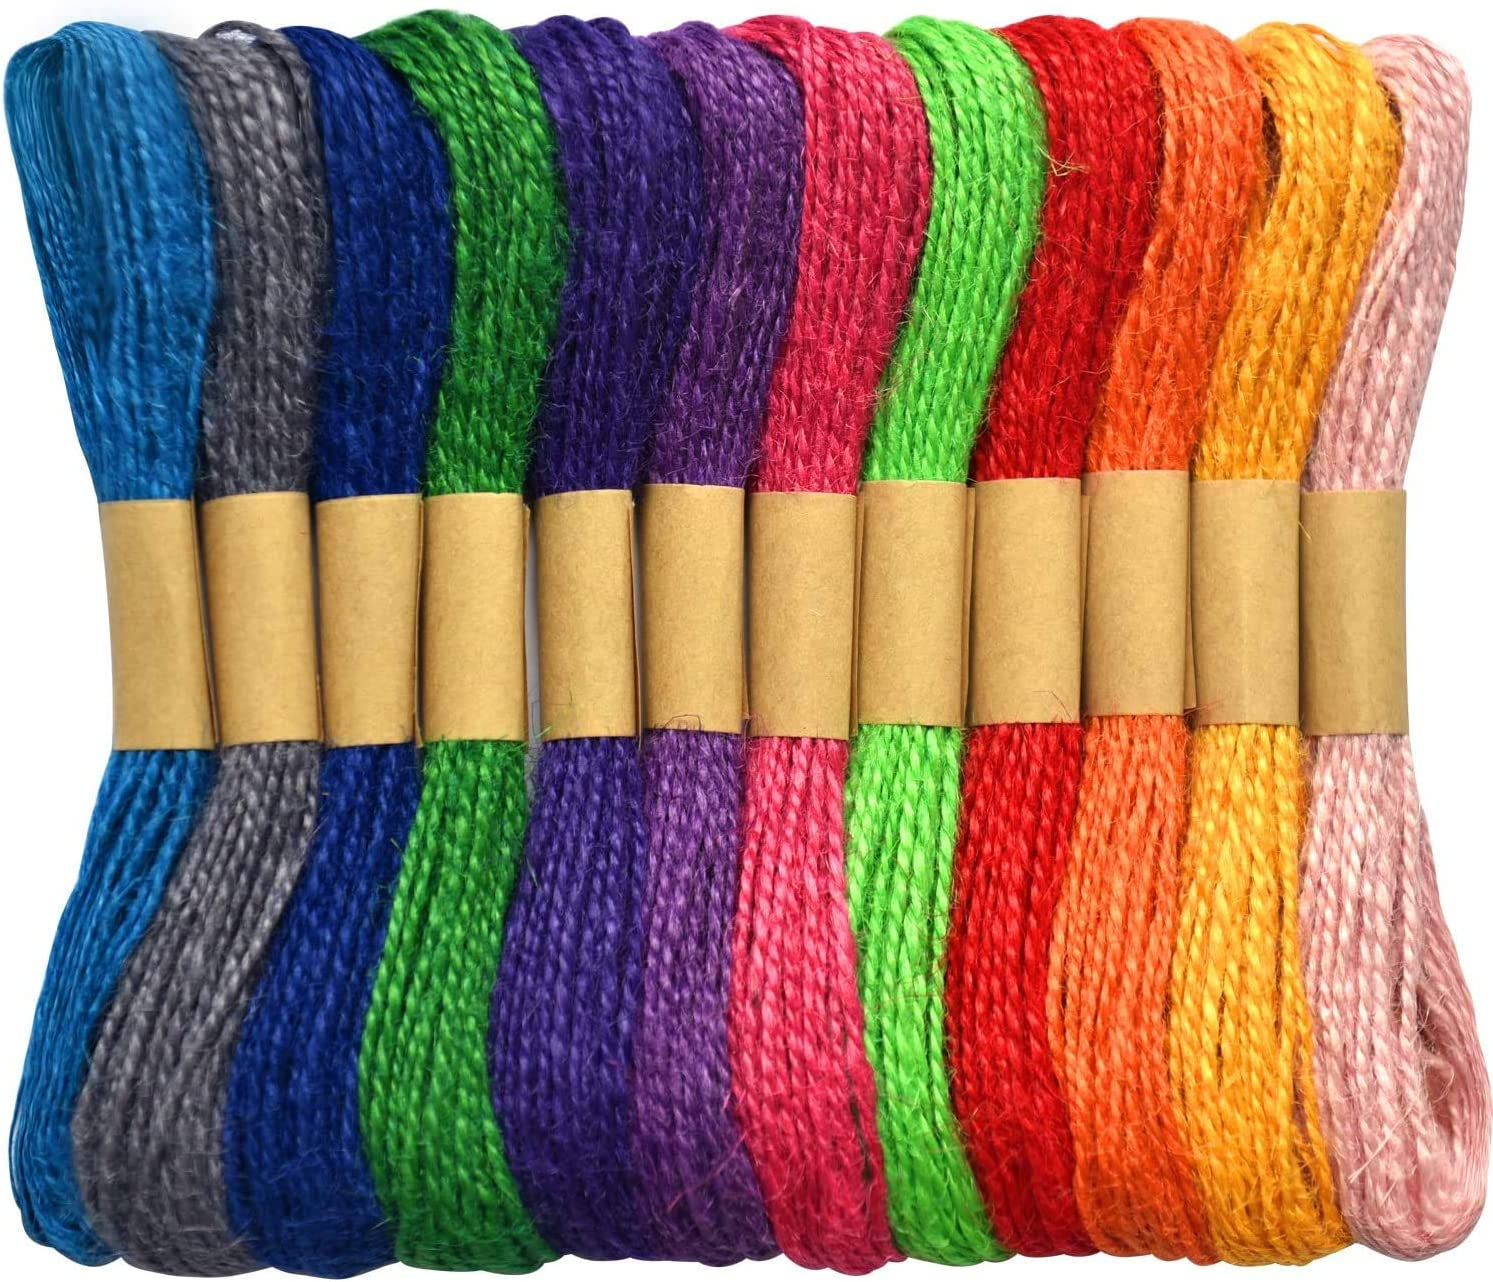 DIY Crafts Gift Package 6.6ft Each Color Gift Wrapping Twine 12 Pack Picture Display and Embellishments Auch Jute Twine Natural Jute String Colorful Hemp Twine String for Artworks